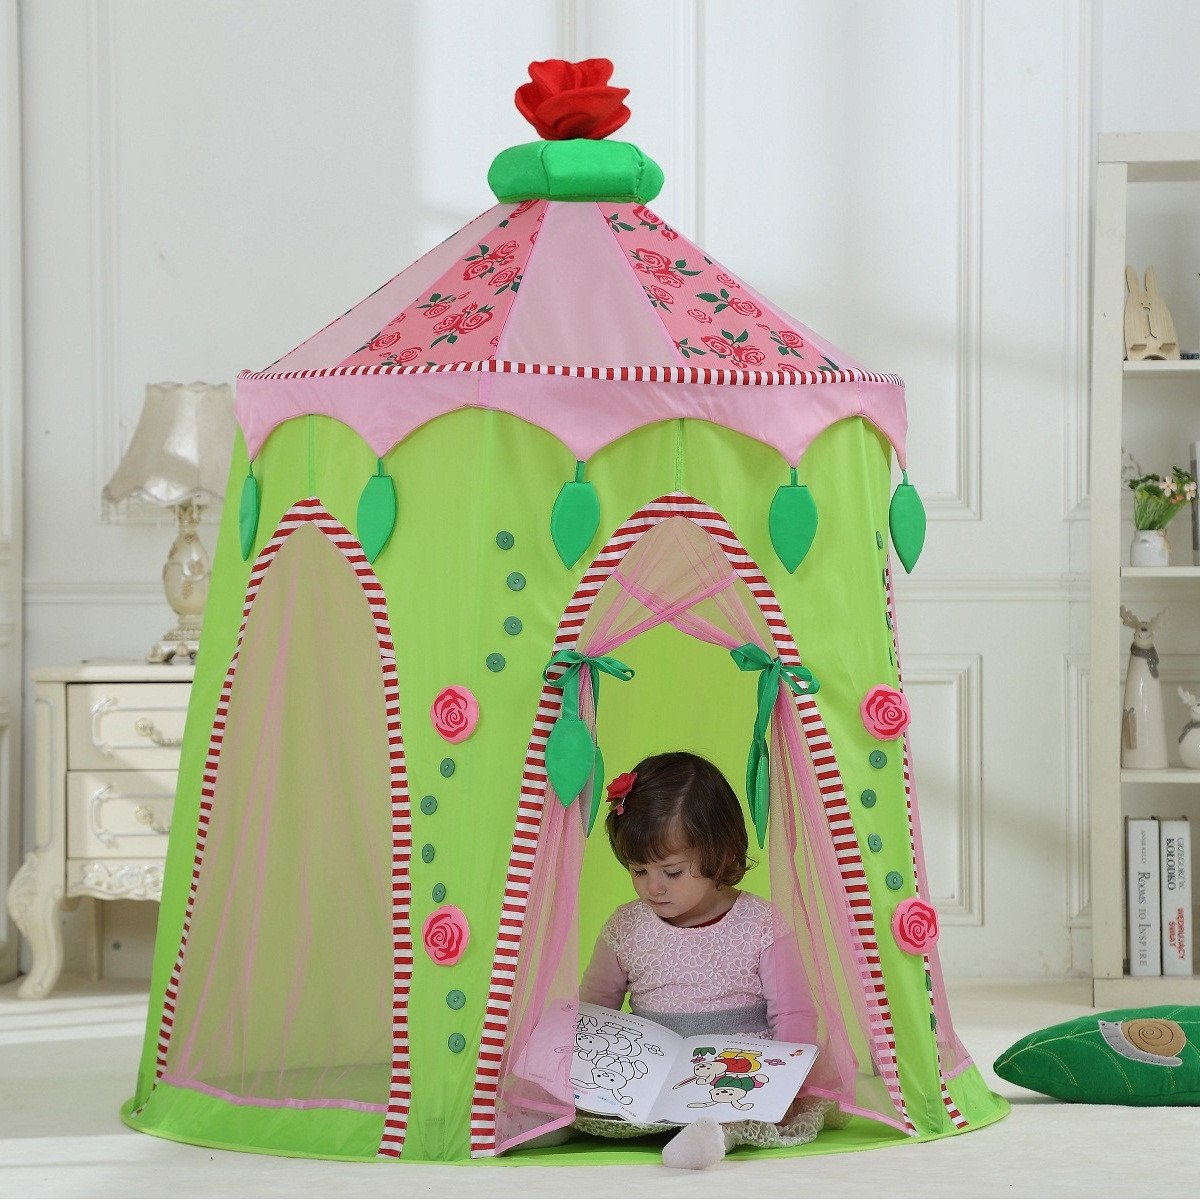 Dream House Foldable Indoor Children Play Princess Pop Up Castle Tent & Dream House Foldable Indoor Children Play Princess Pop Up Castle ...